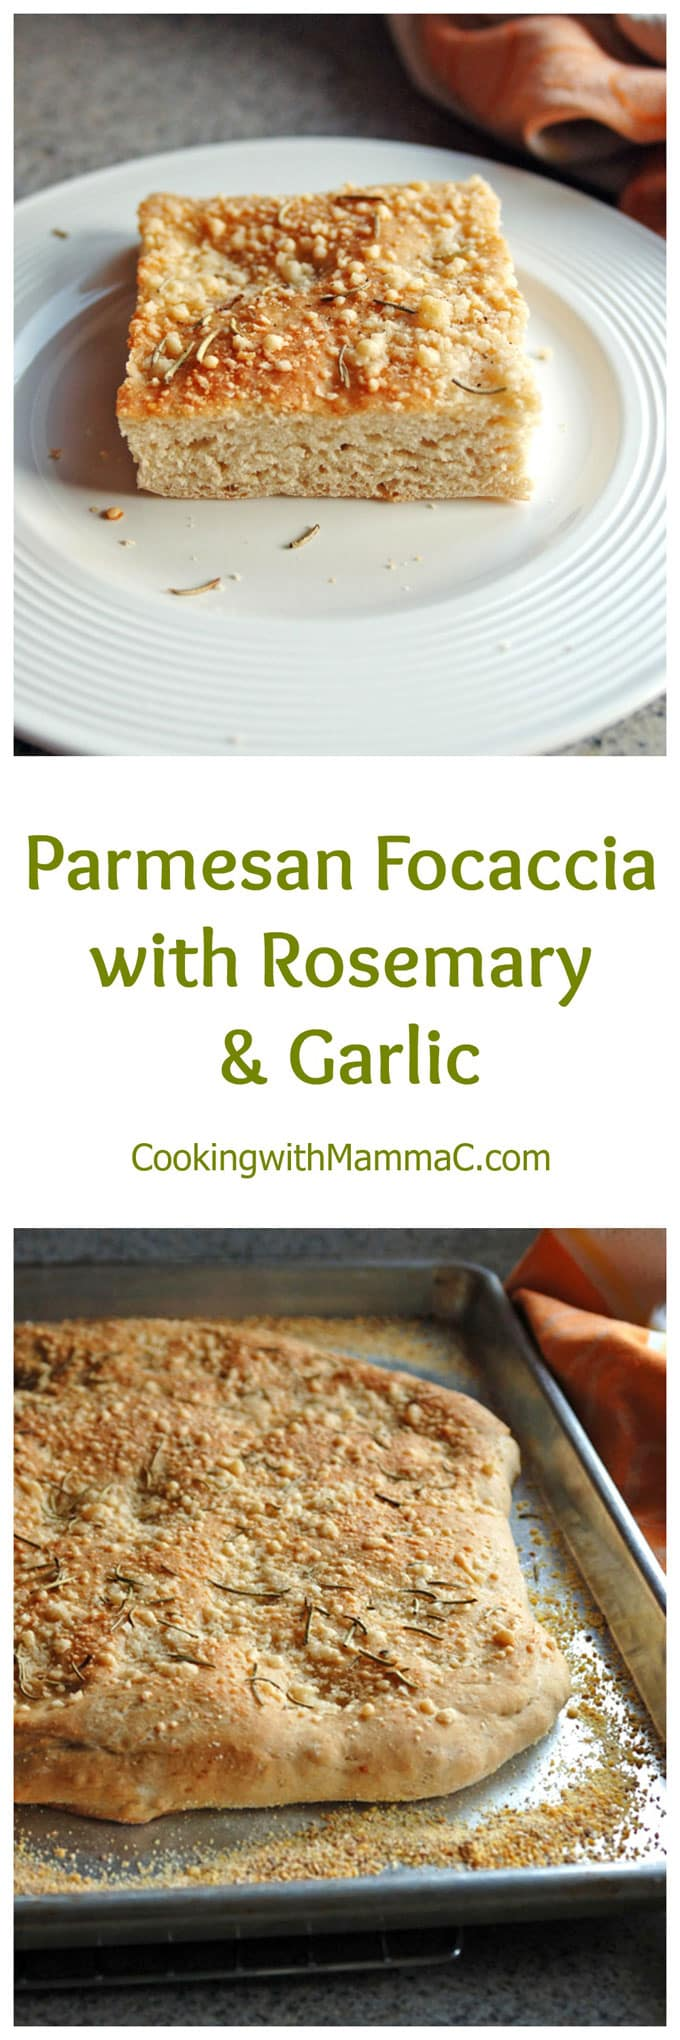 This easy Parmesan Focaccia with Rosemary and Garlic takes just one hour! Delicious with a 50-50 combination of white and whole wheat flour.